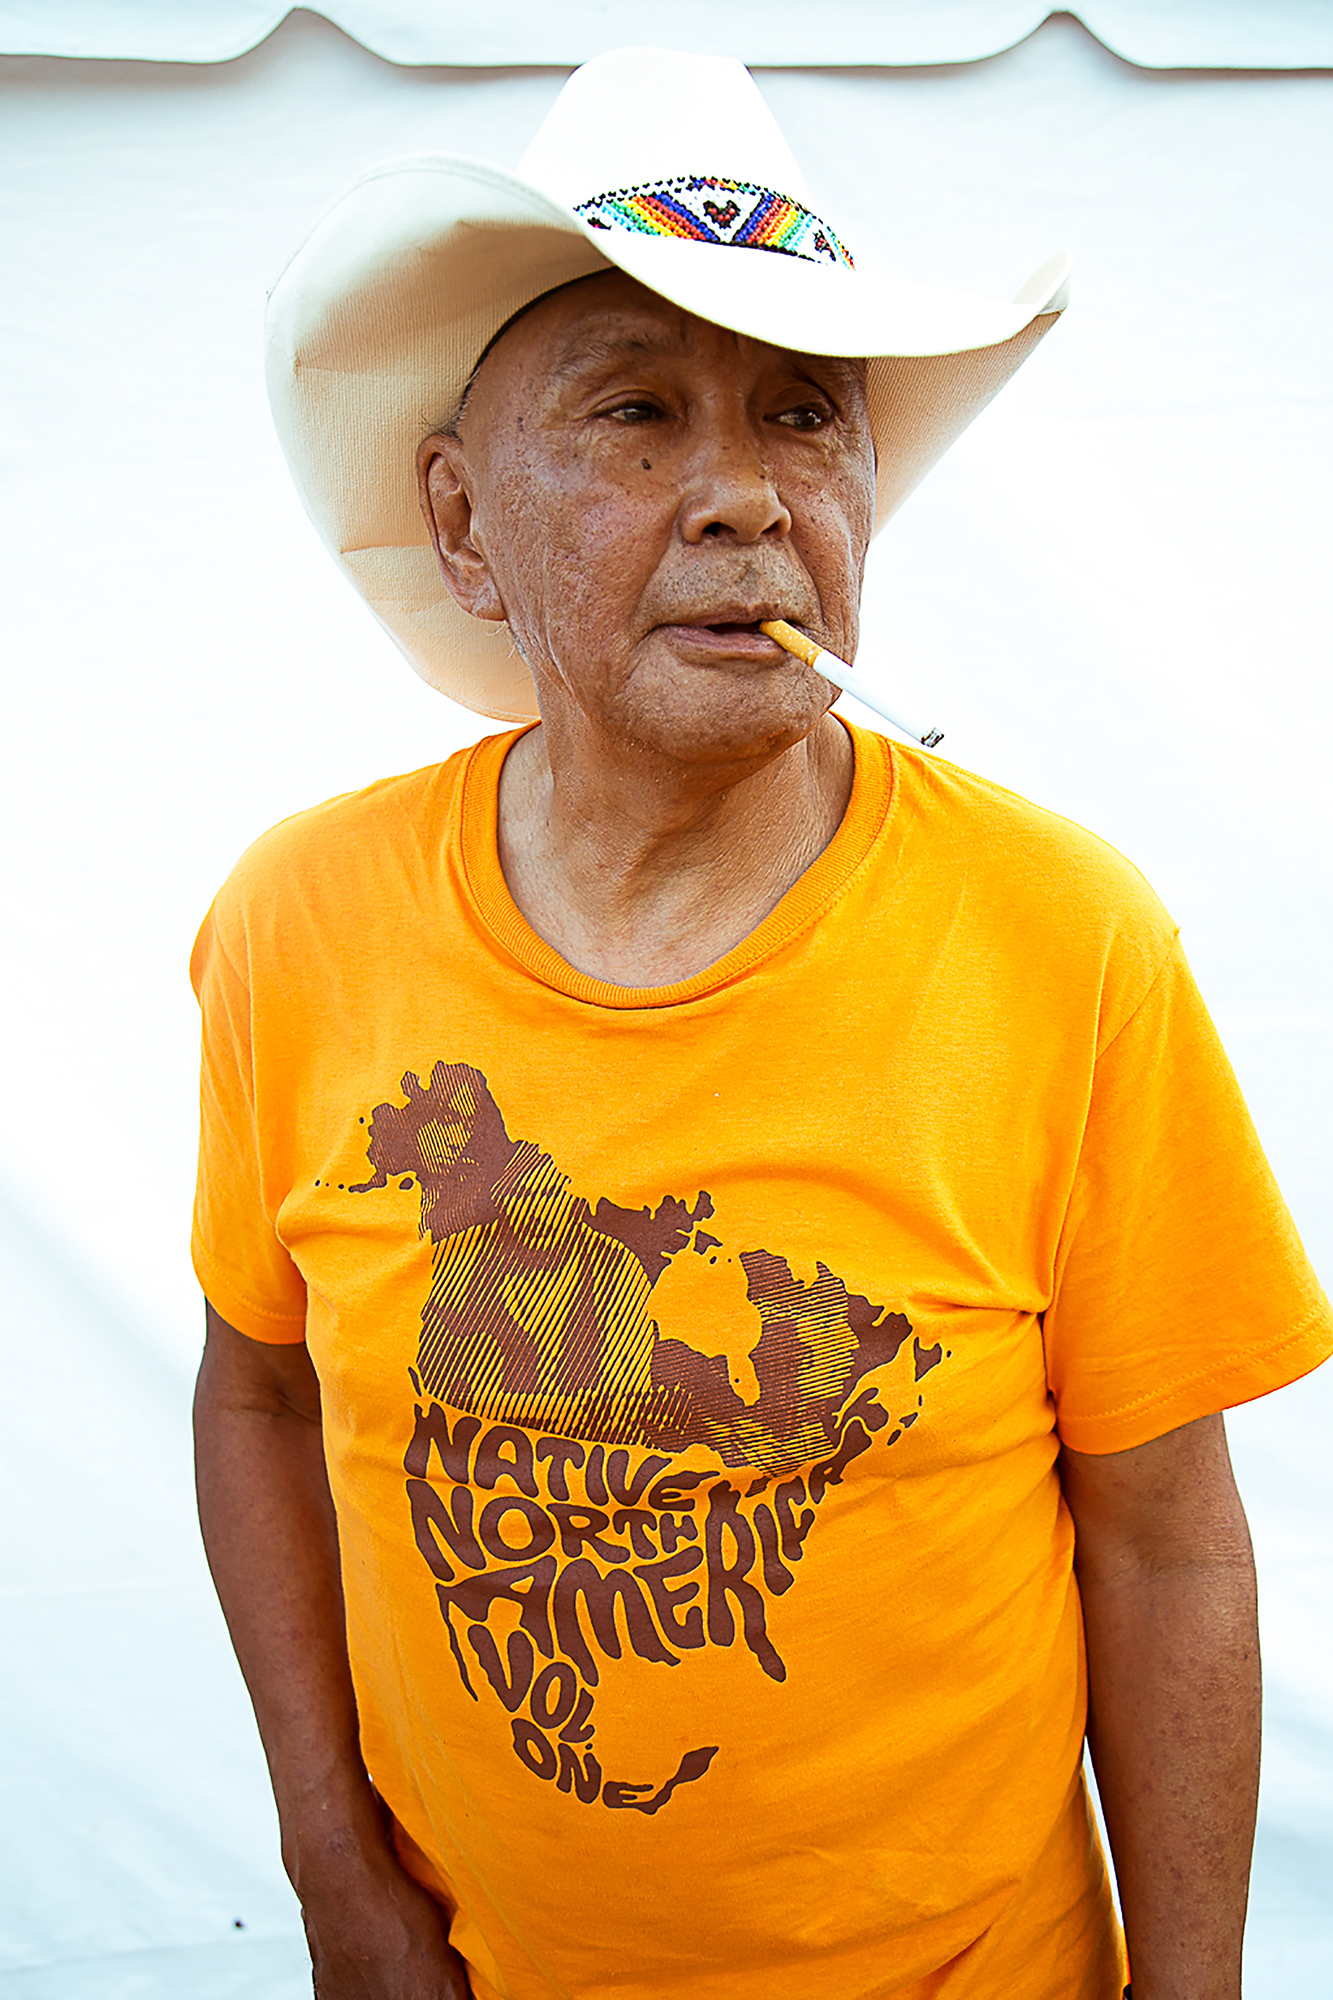 Old Man with a cowboy hat and a bright yellow shirt on smoking a cigarette